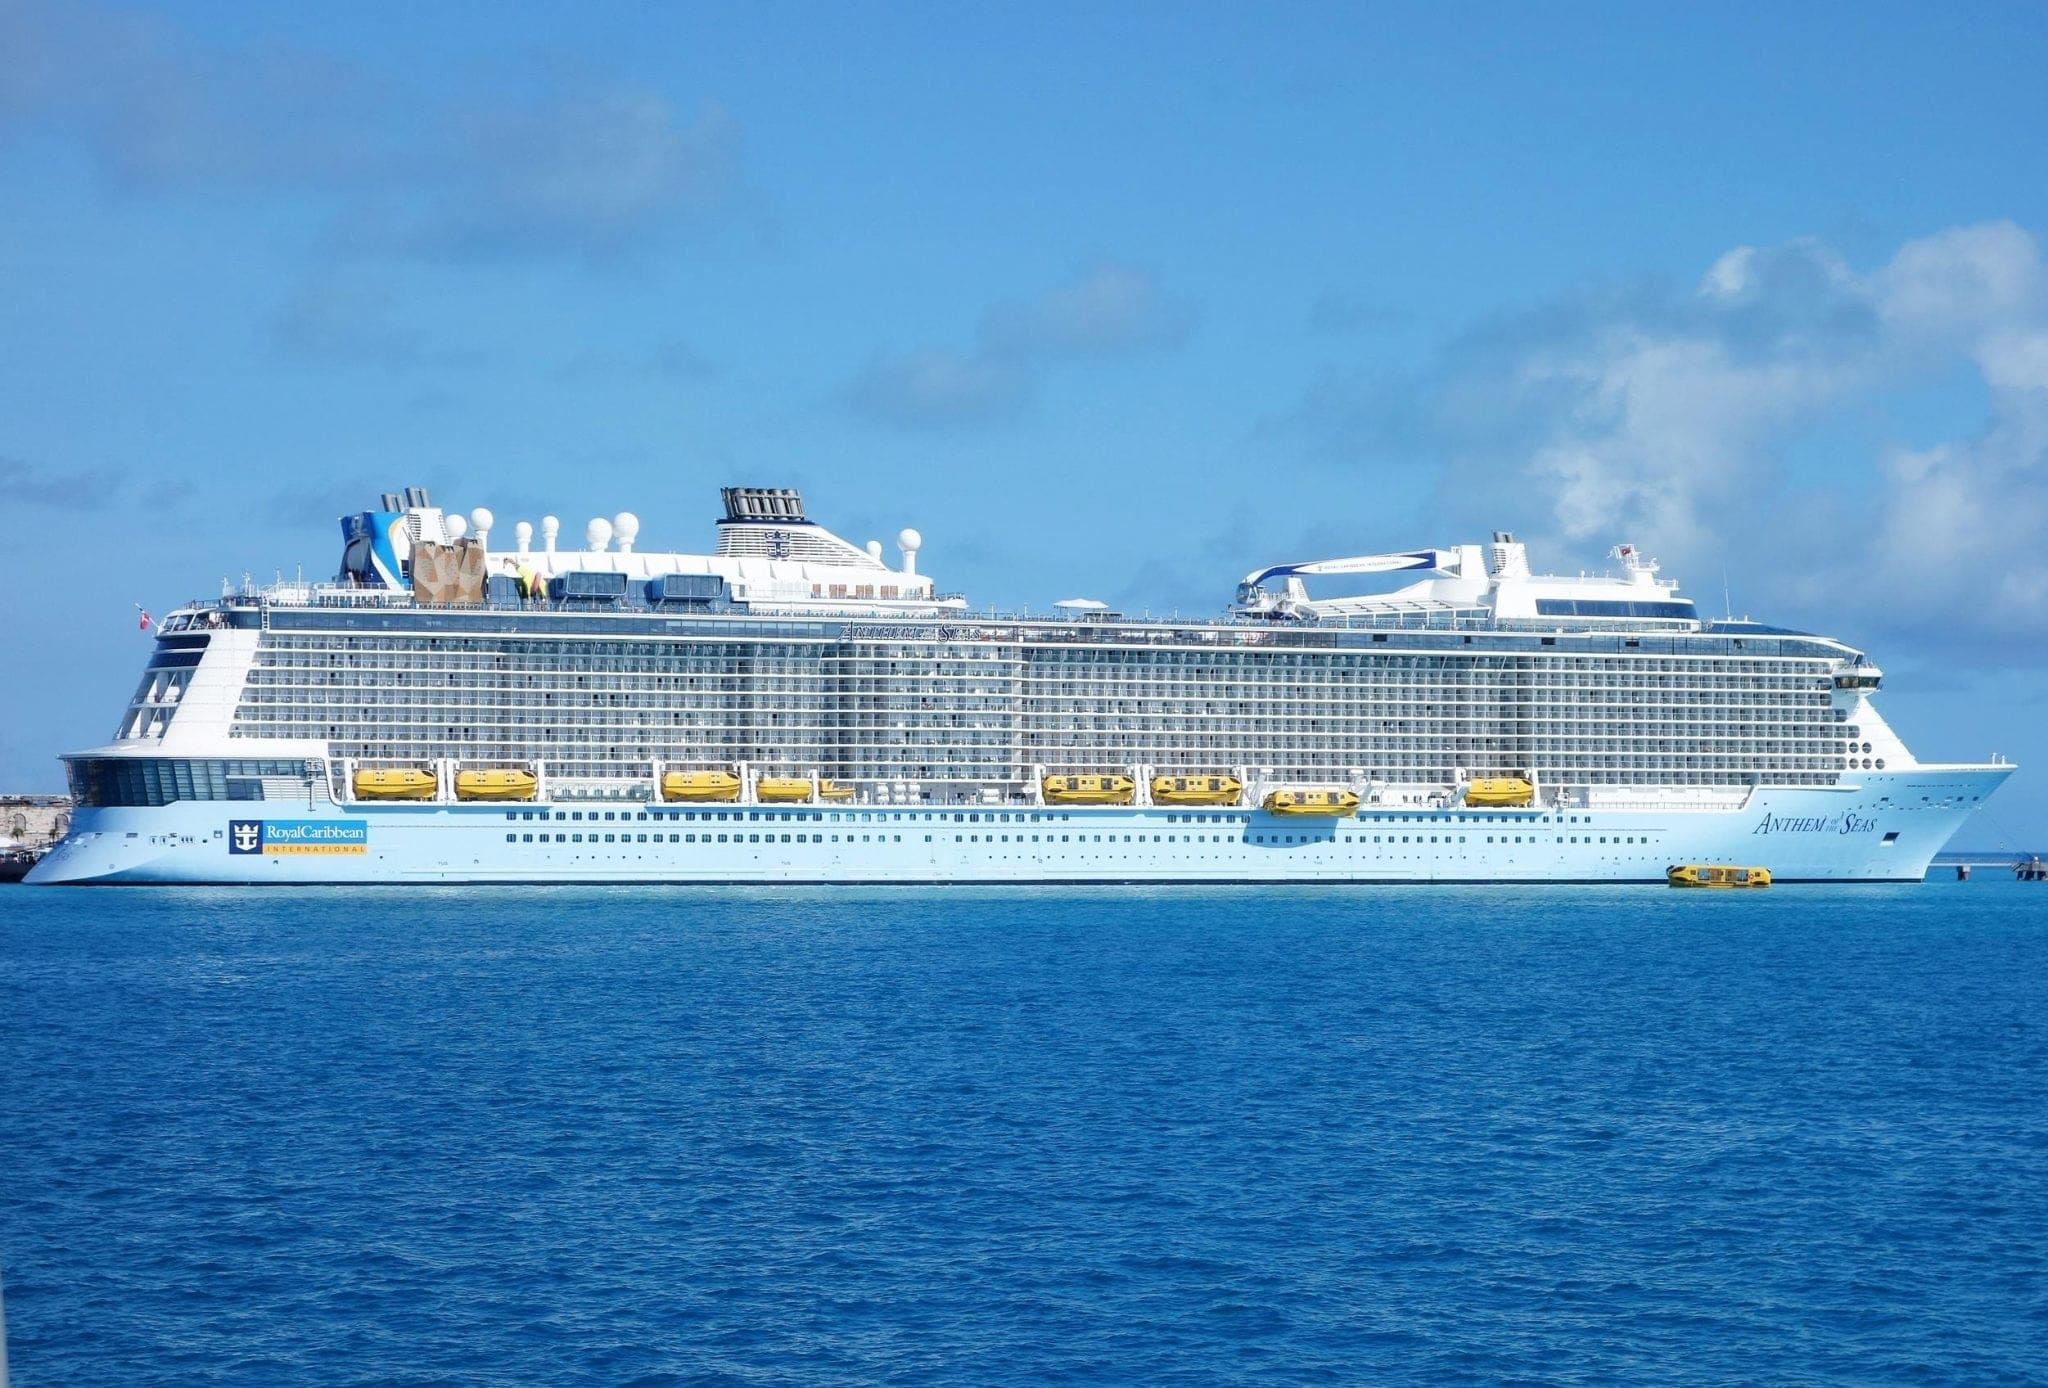 Anthem of the Seas Bermuda Royal Caribbean Cruise Ship